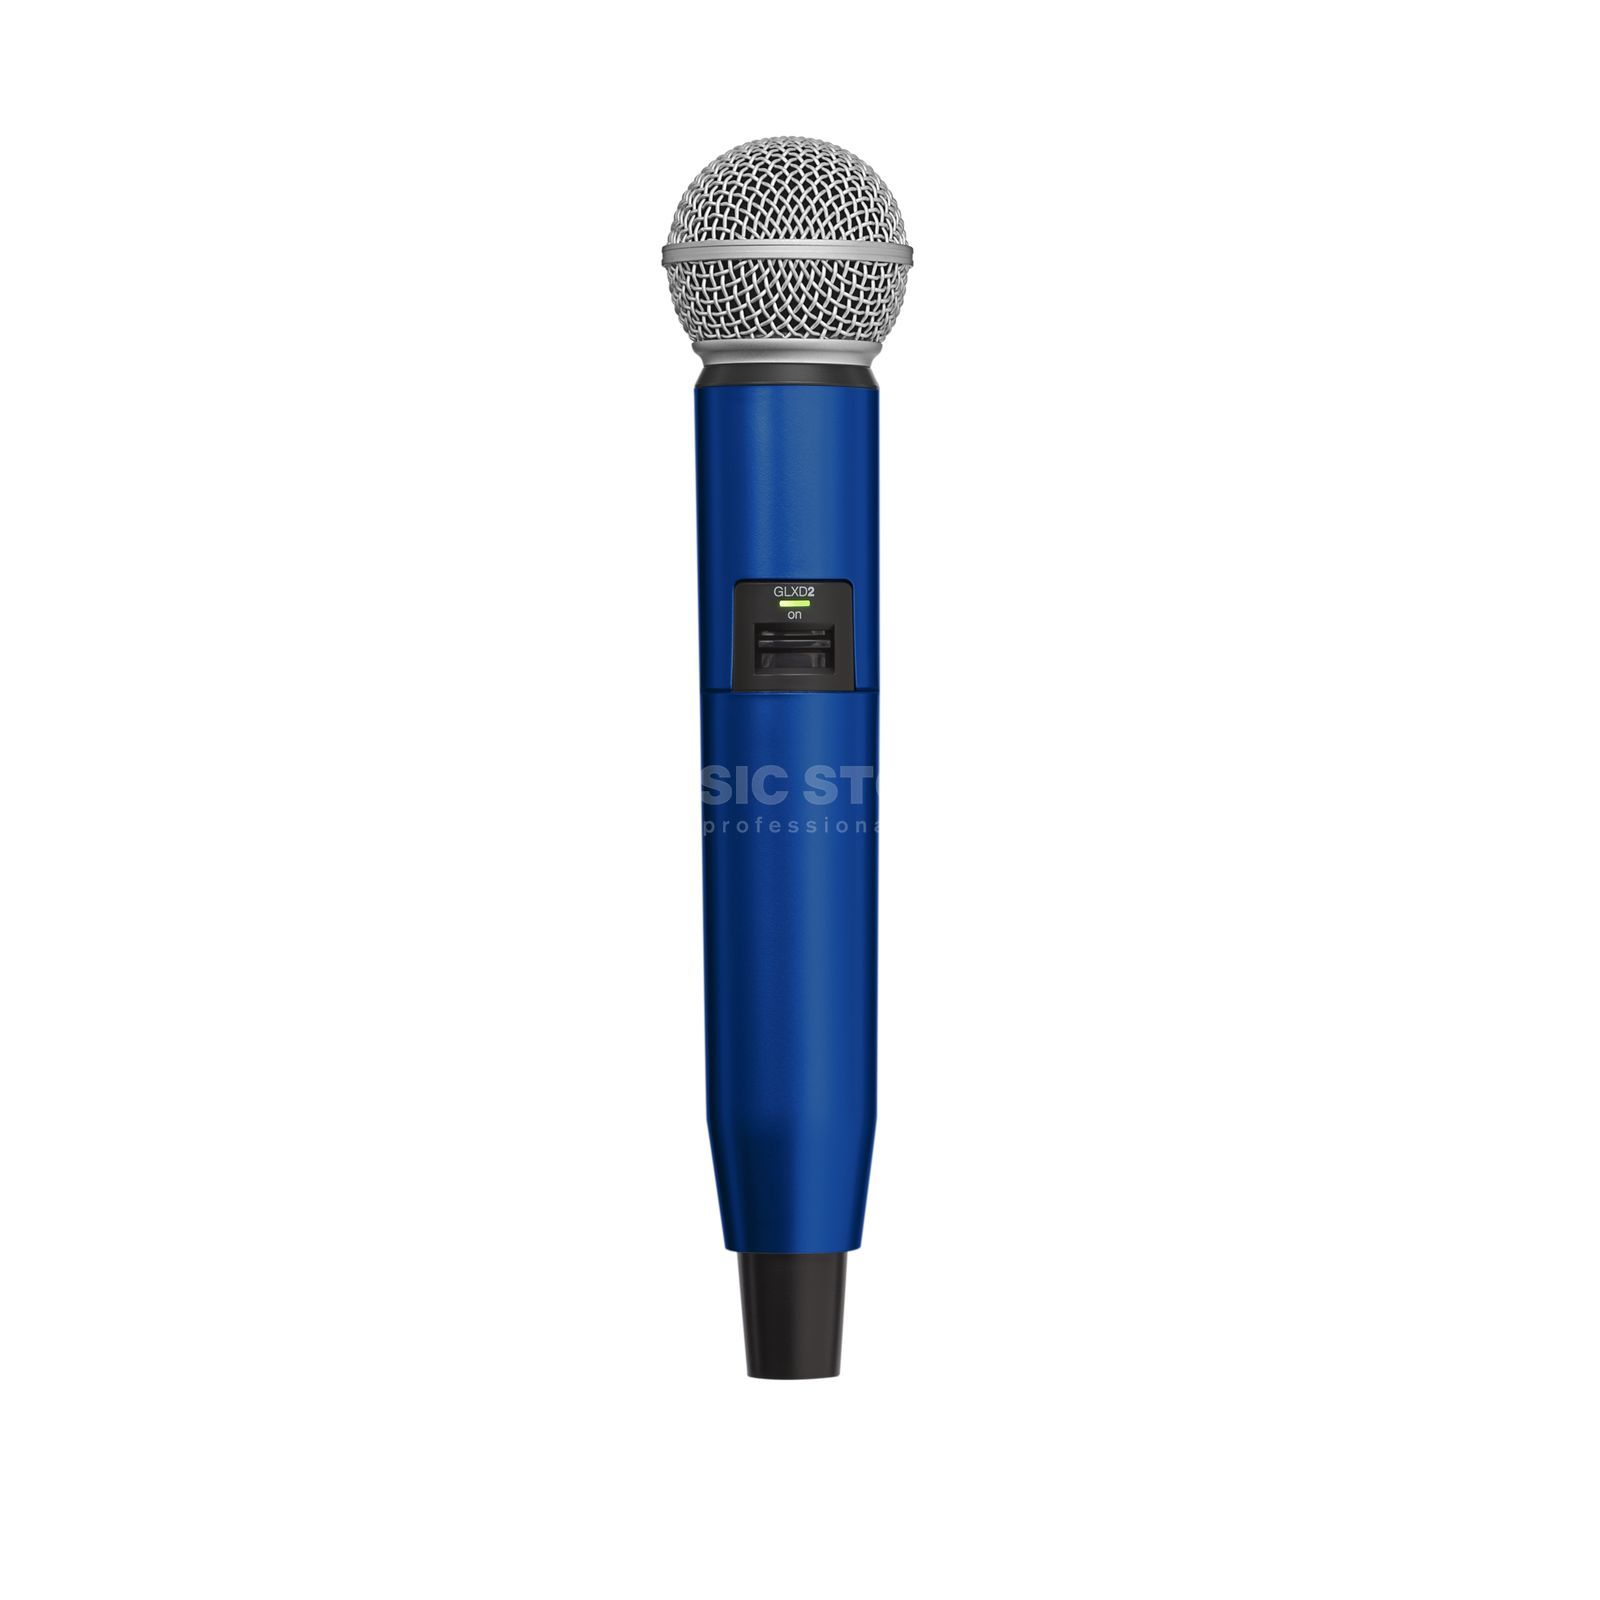 Shure WA723 Colour Housing blue for GLXD2/SM58, GLXD2/Beta58A Produktbillede